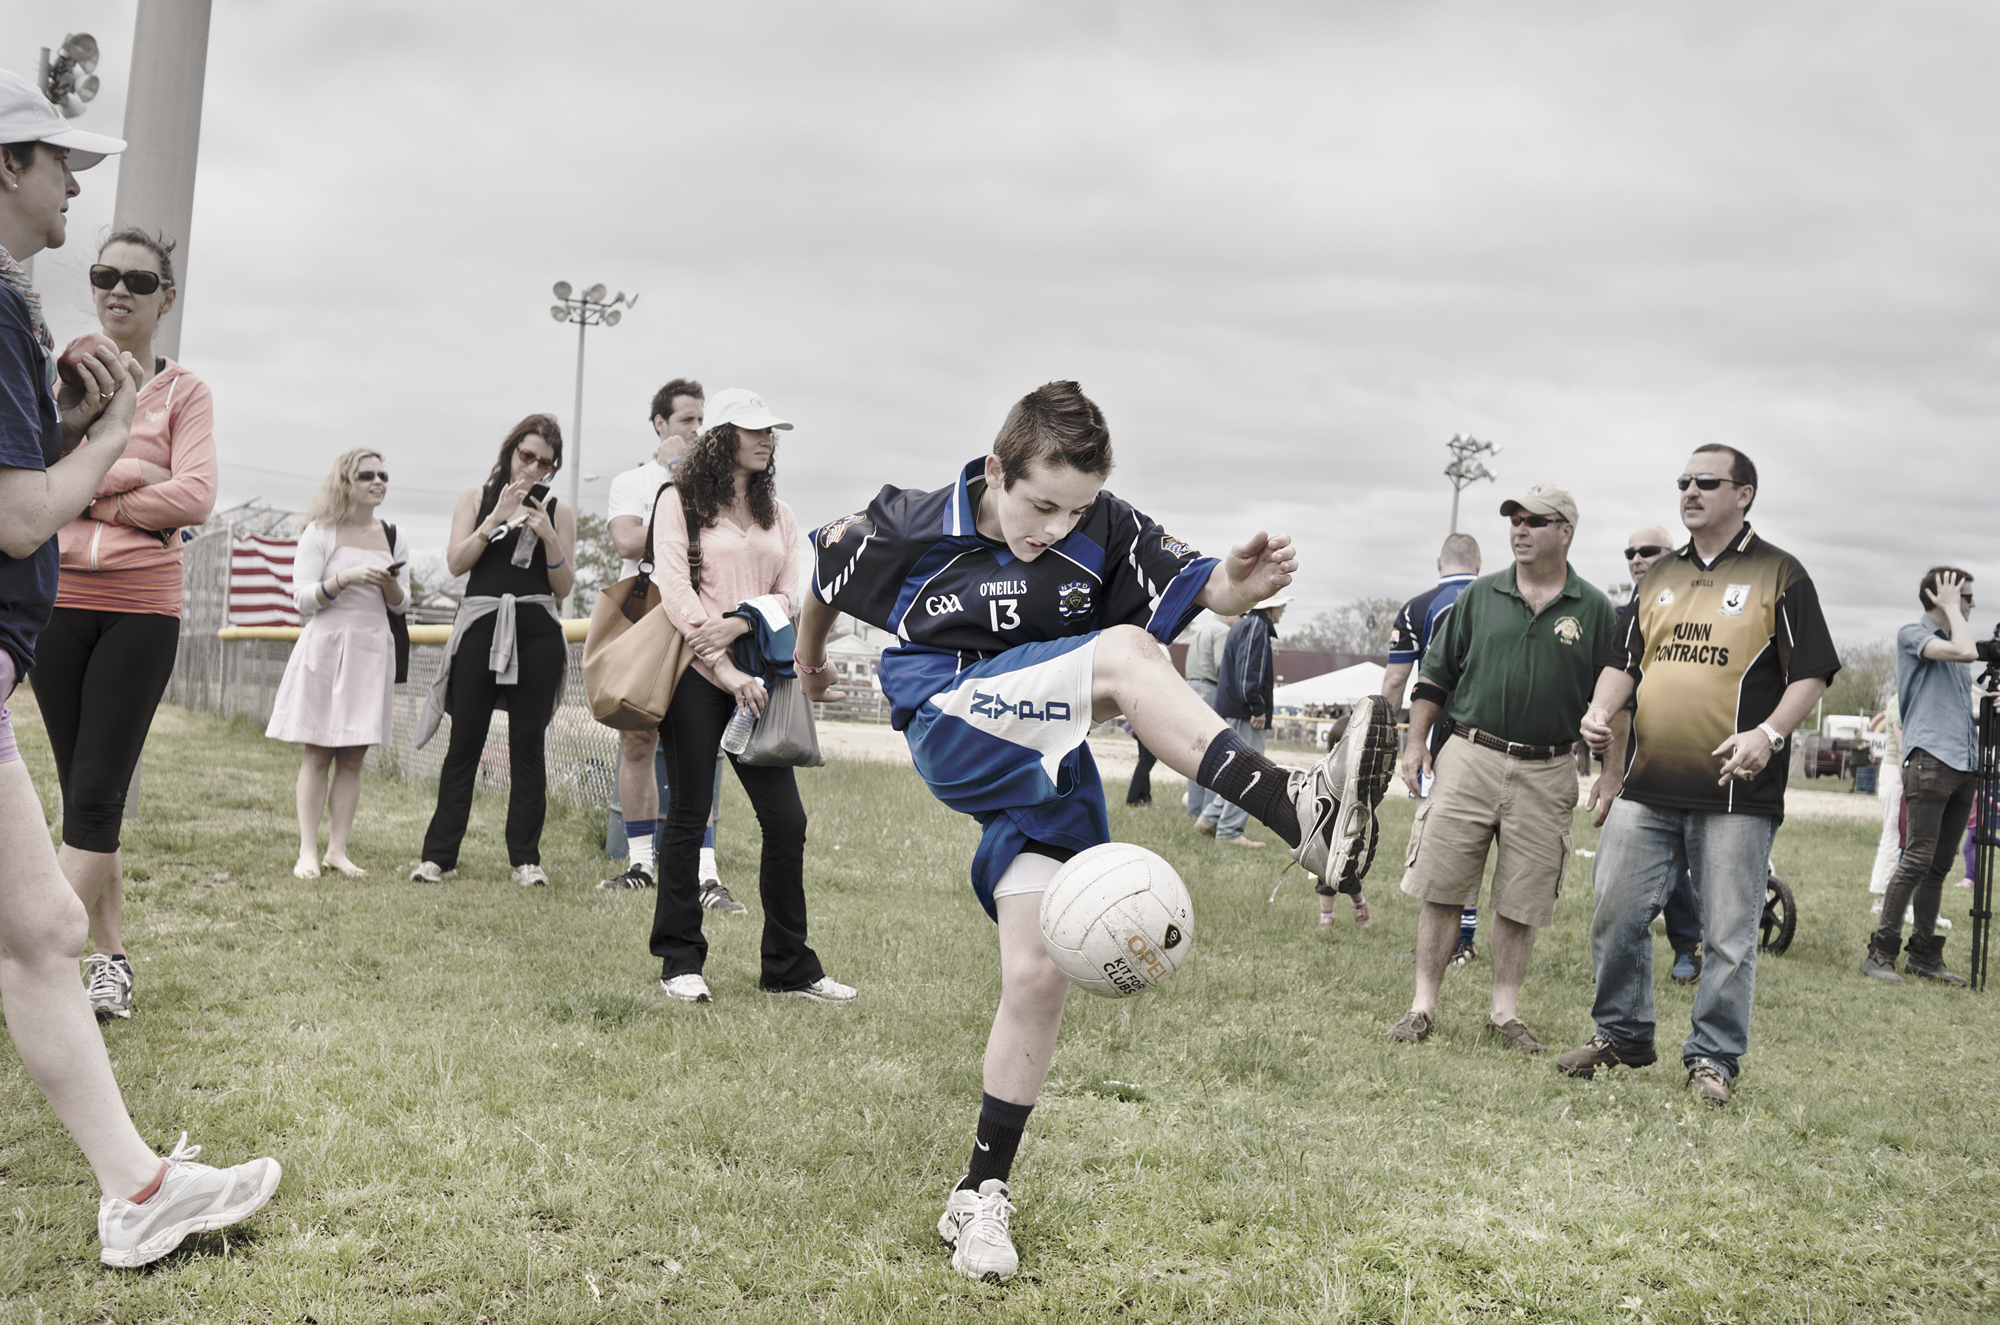 Gaelic football, Breezy Point, Queens NY. June 8, 2013.